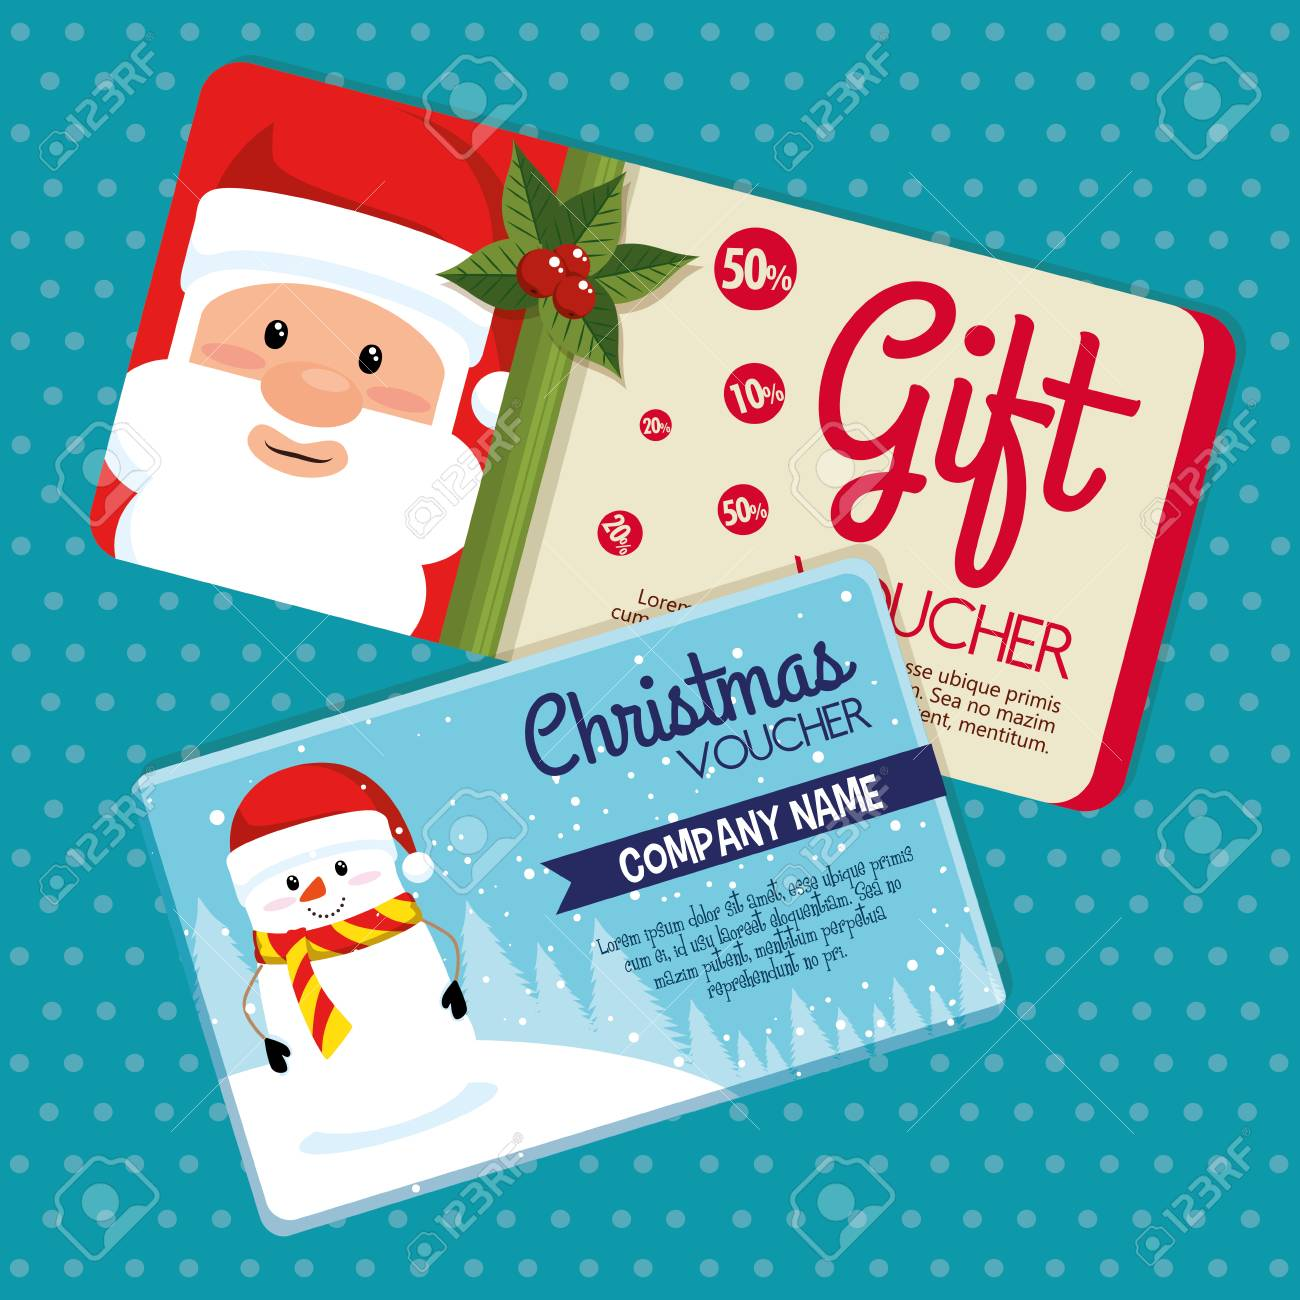 Christmas Gift Voucher Gift Card Vector Illustration Graphic Royalty Free Cliparts Vectors And Stock Illustration Image 89372619